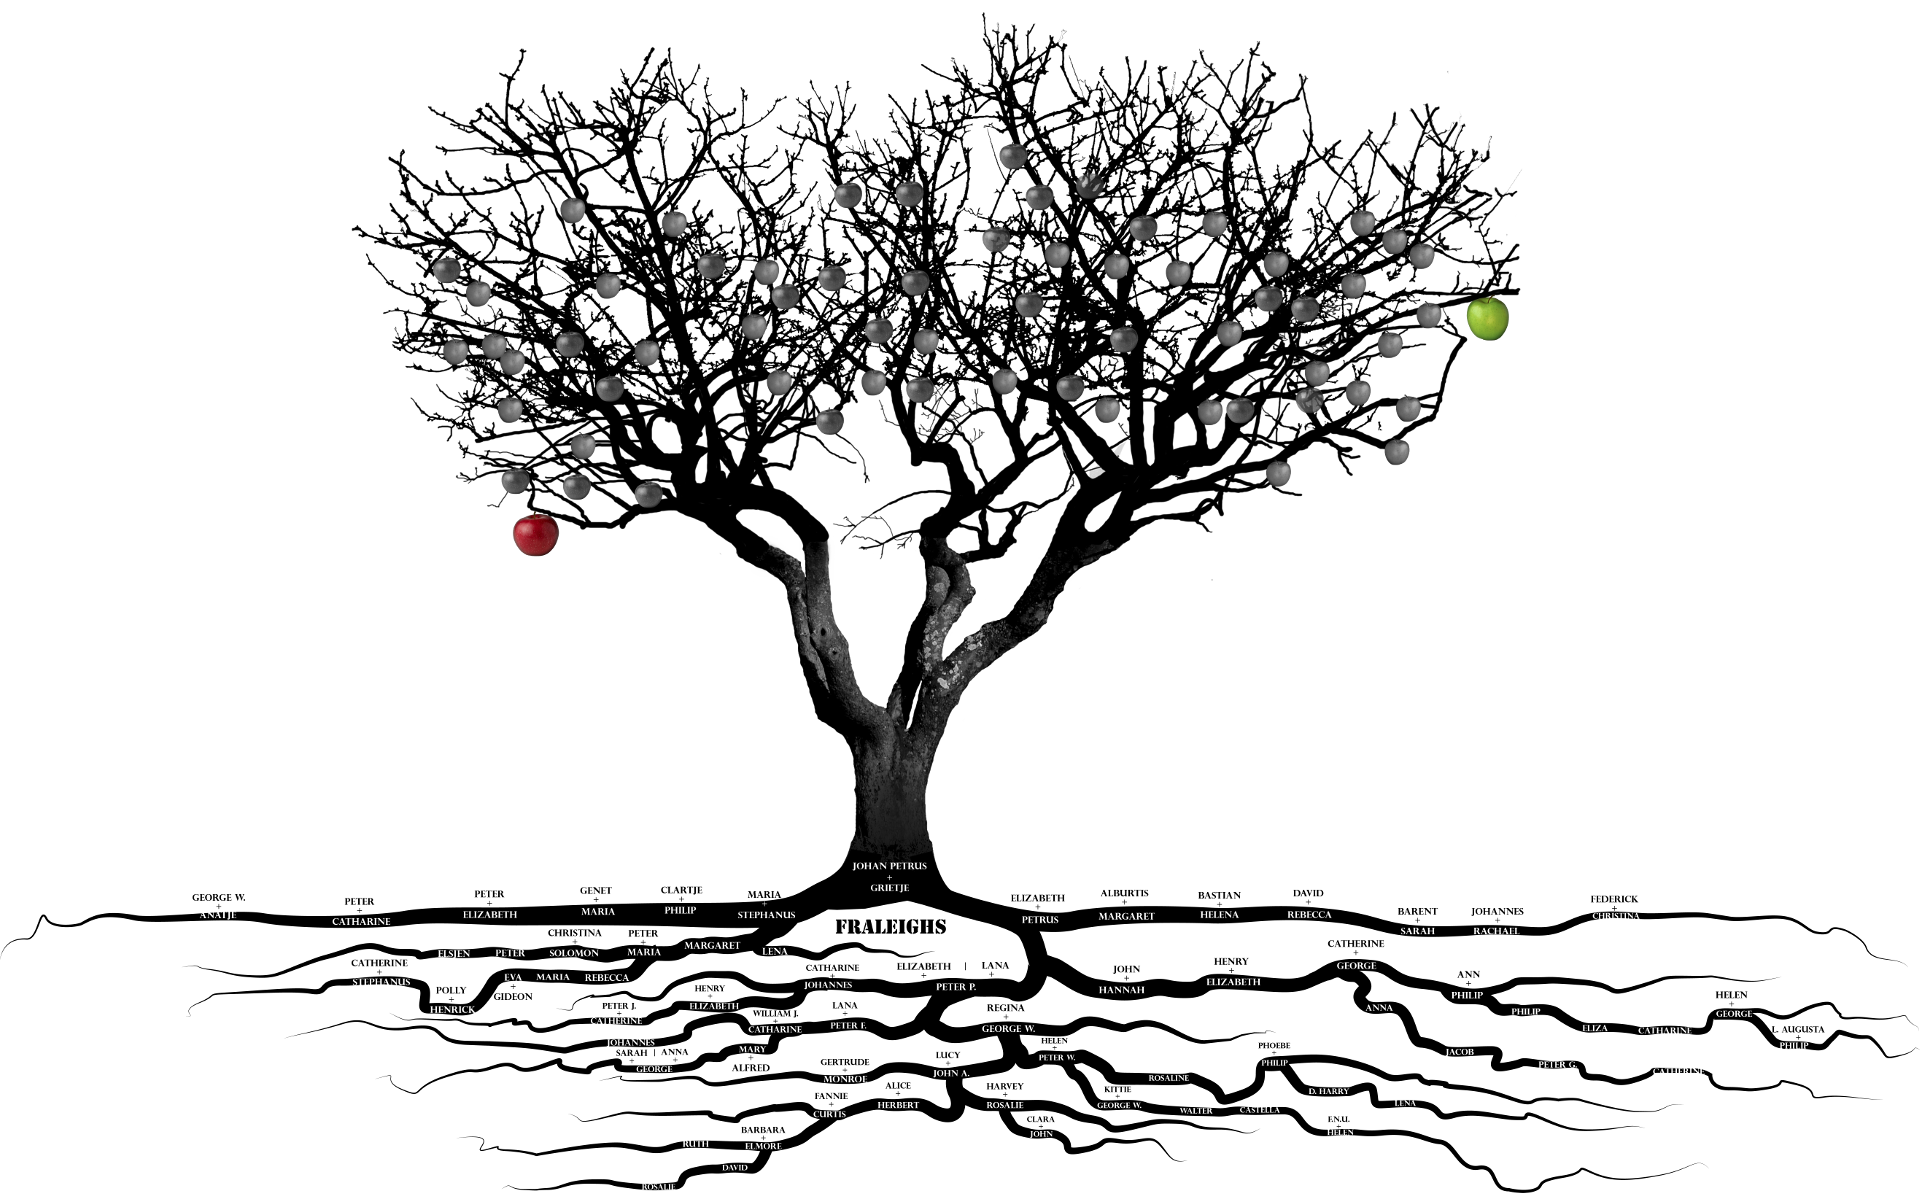 background image of an apple tree